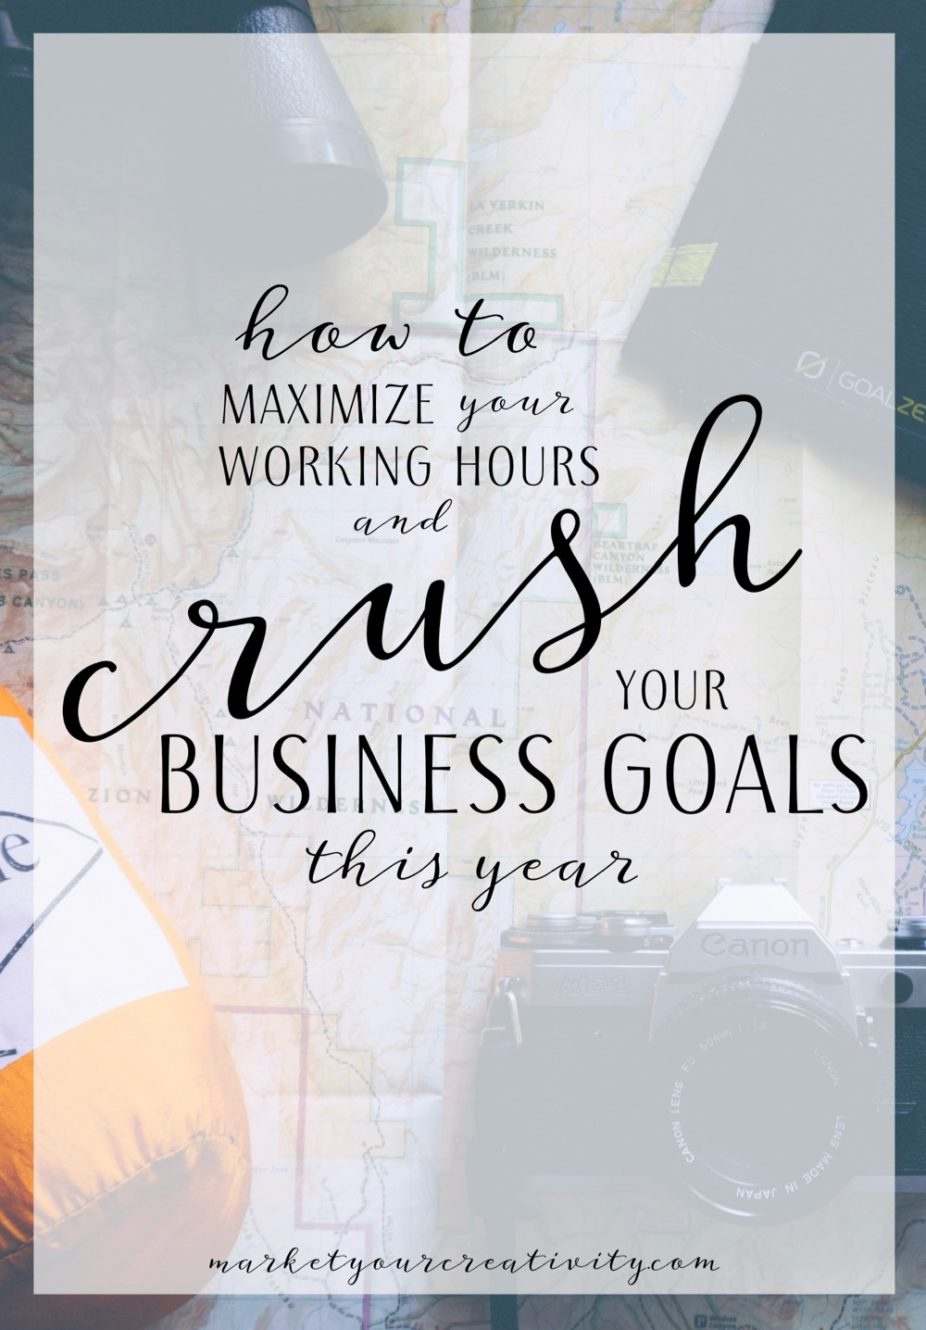 Crush your business goals and maximize your working hours this year